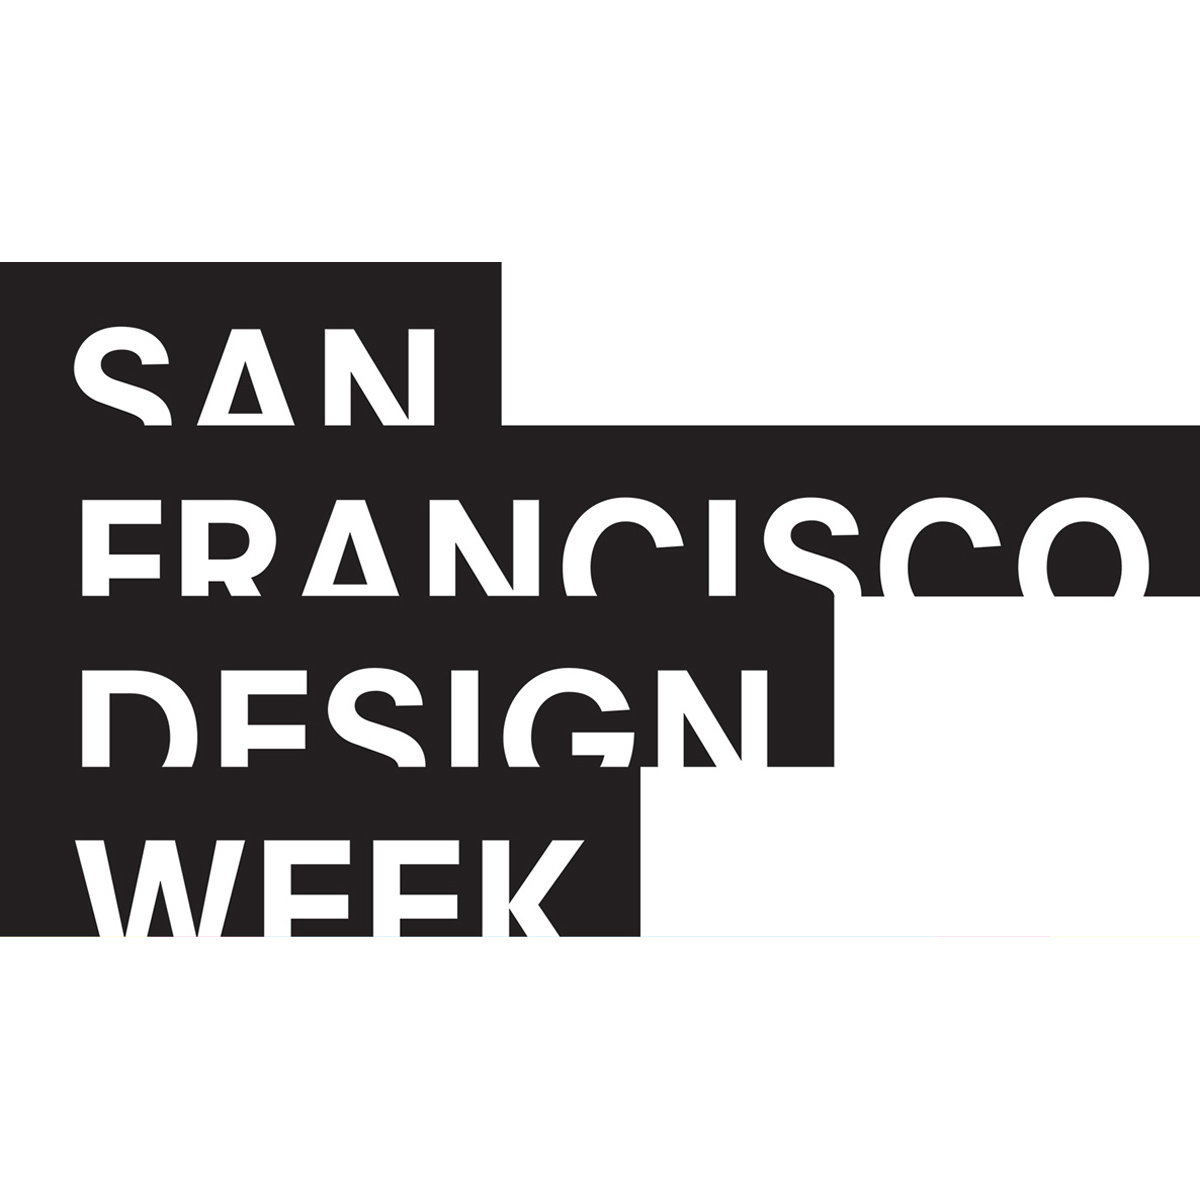 San Francisco Design Week 2020